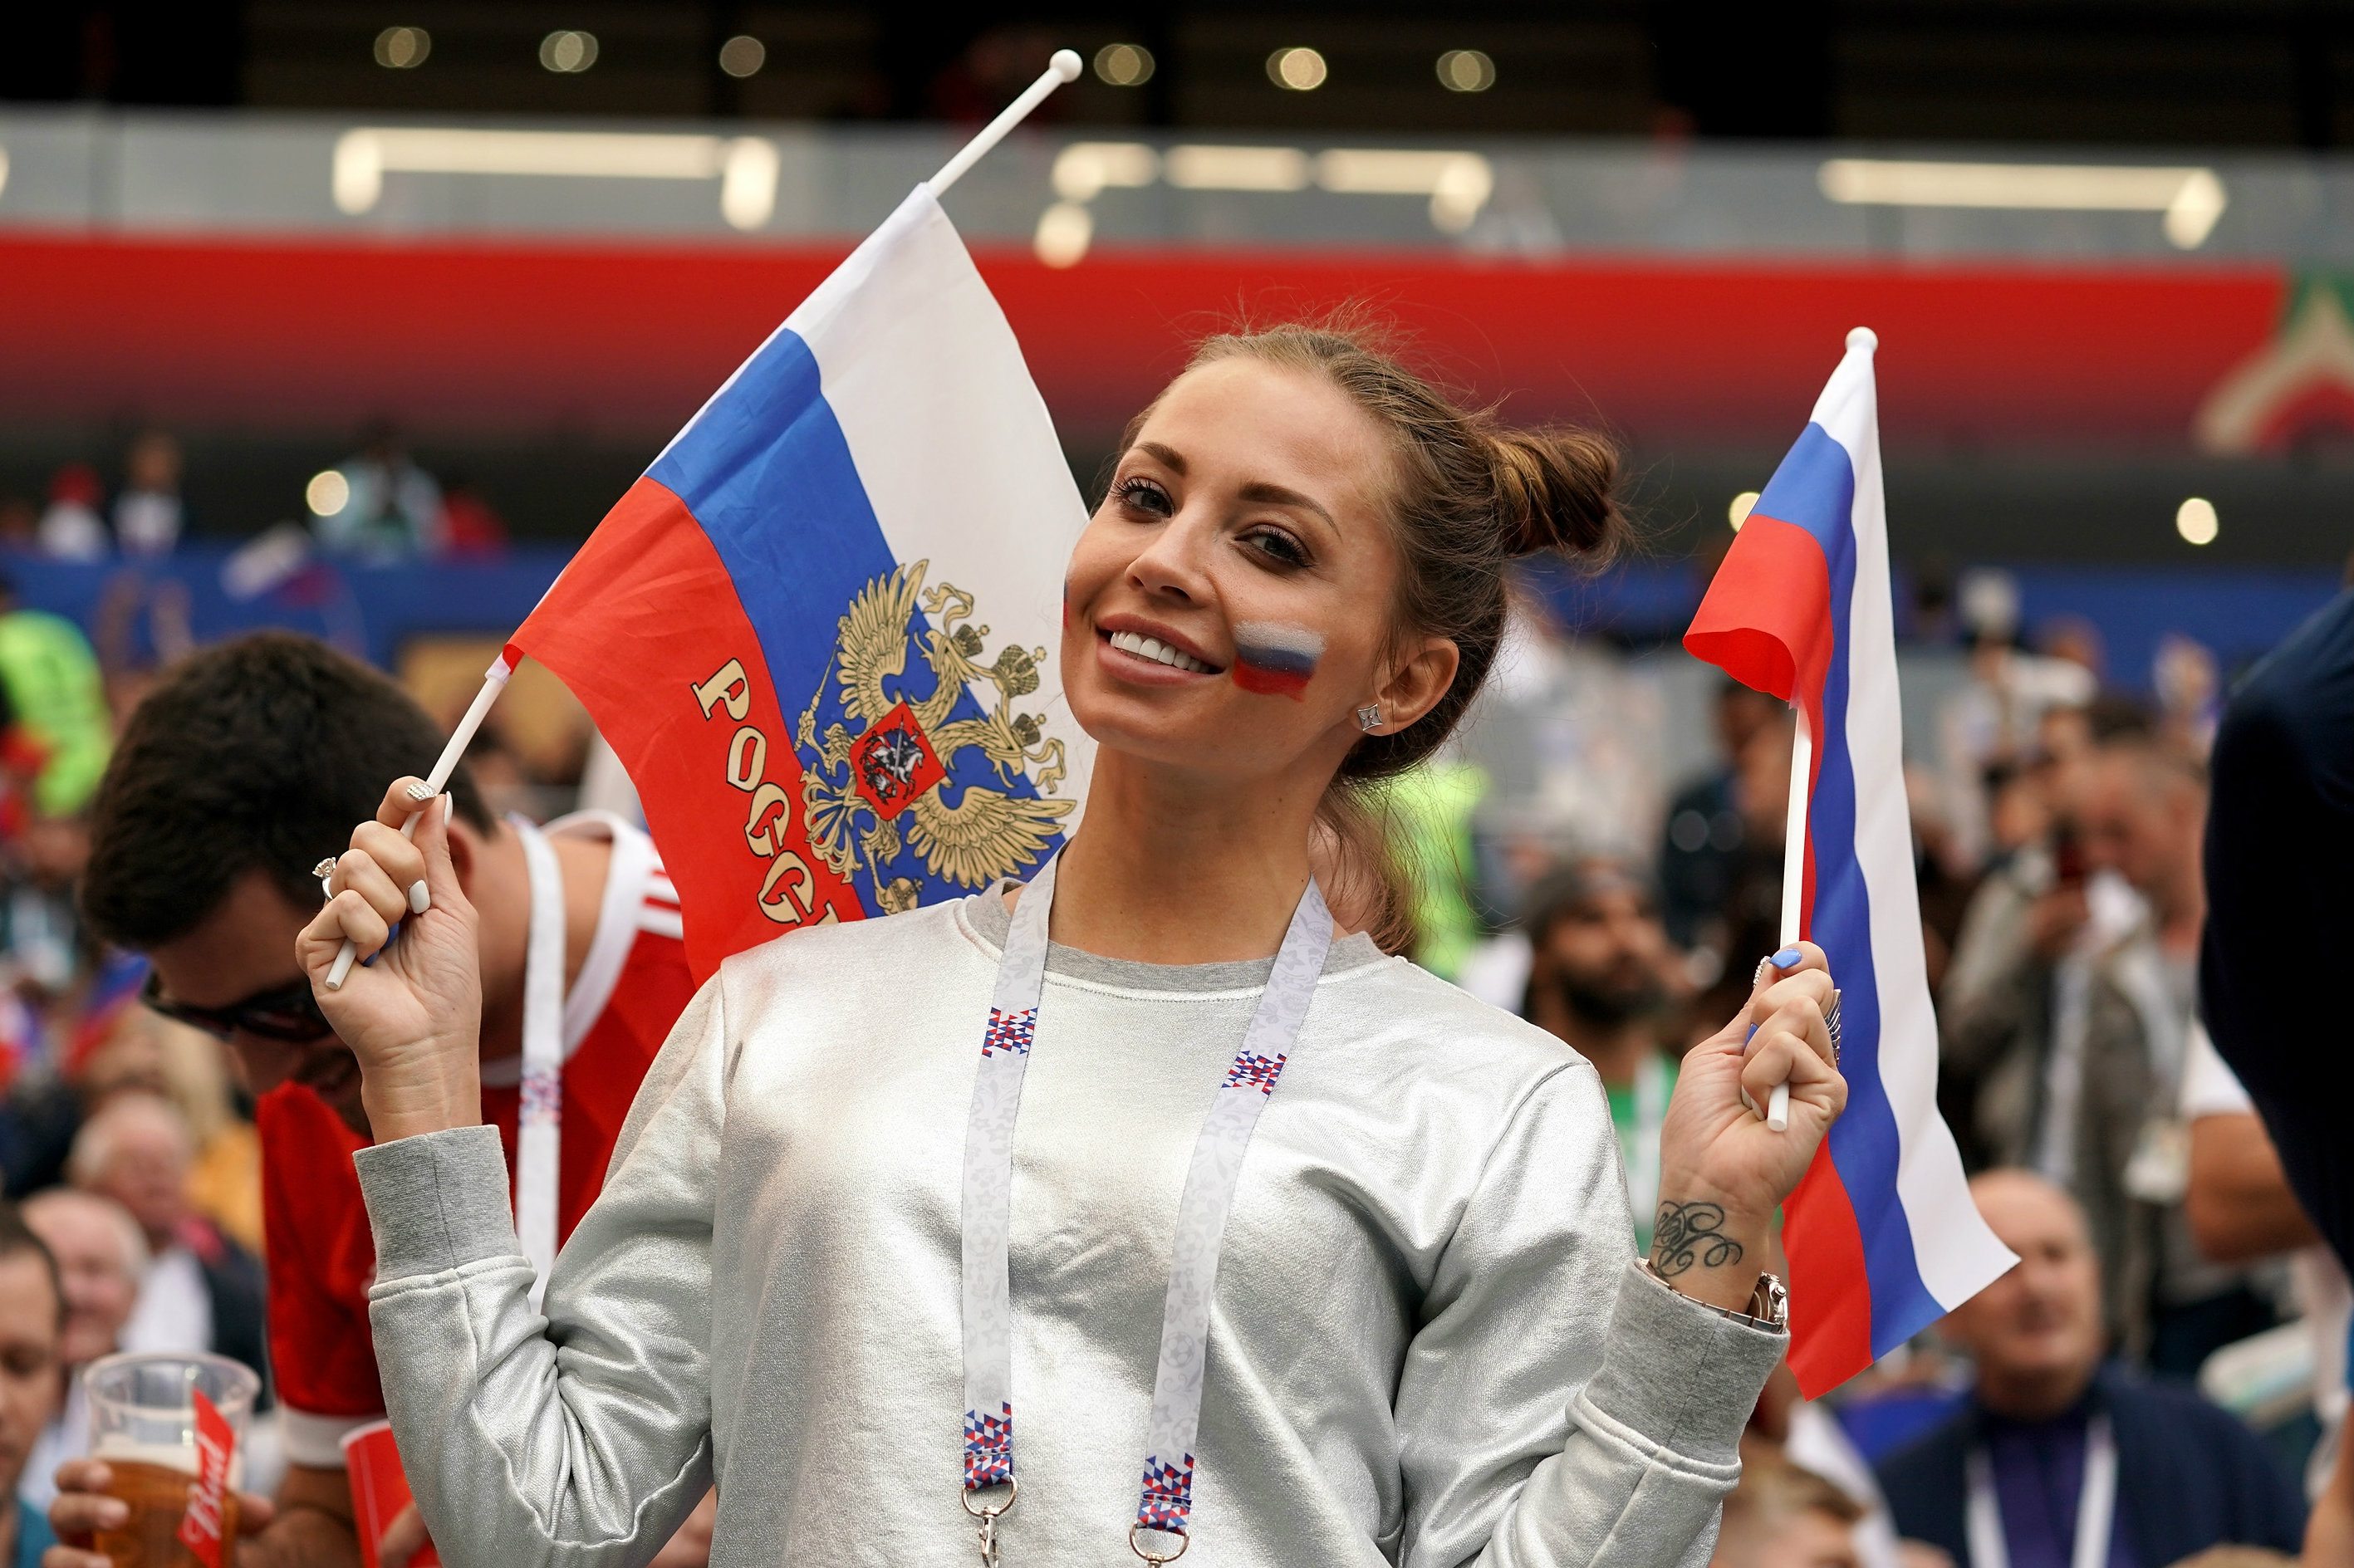 A Russian fan enjoys her team's big win over Saudi Arabia.